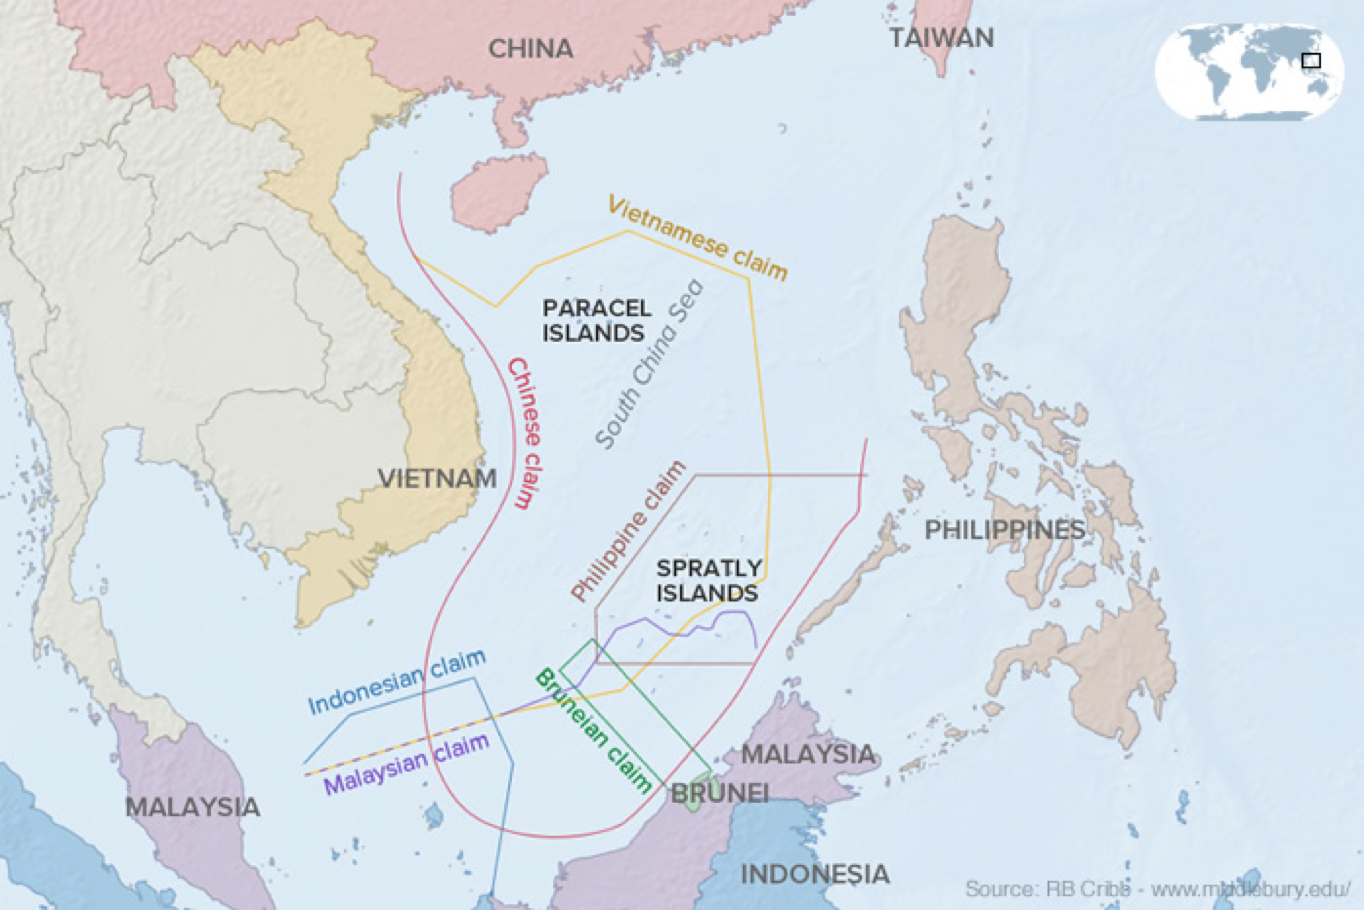 Competing Claims in the South China Sea Viewed Through International